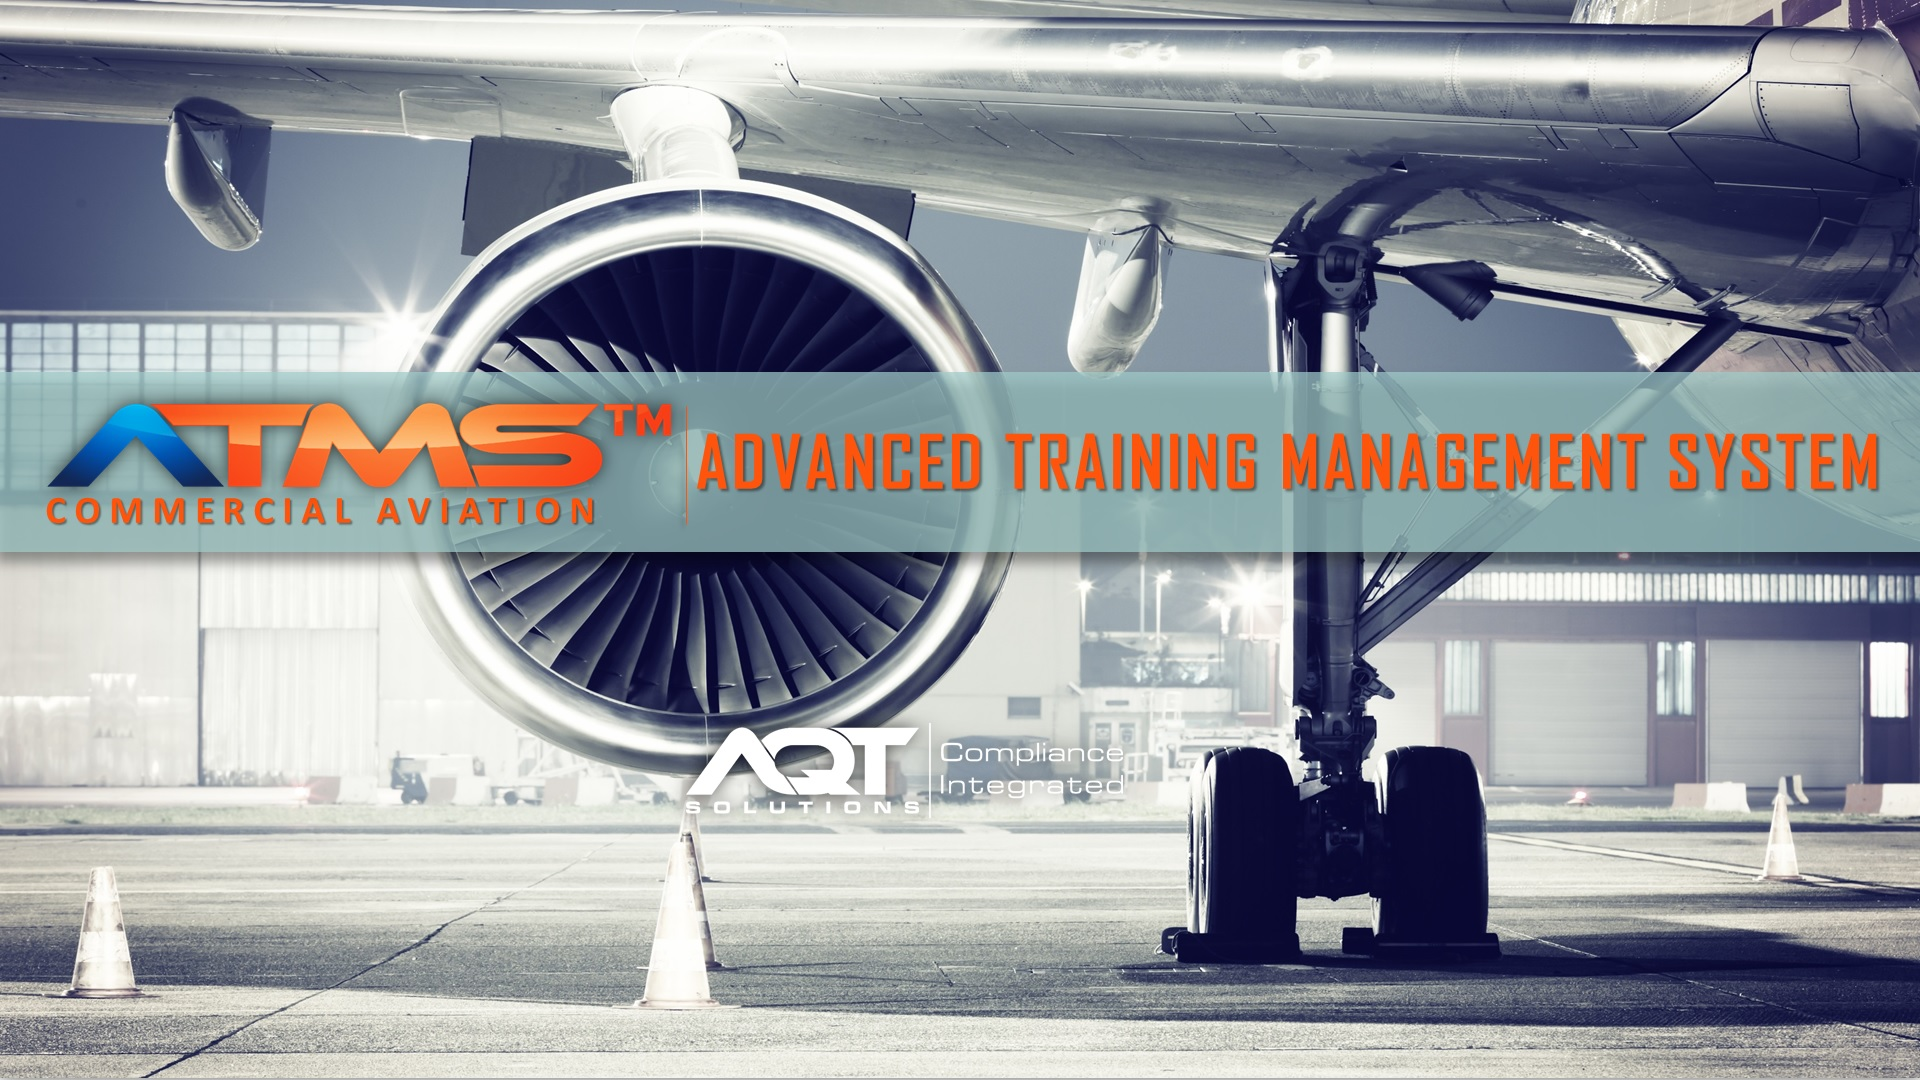 Commerical-Aviation-Training-System-Slide-1